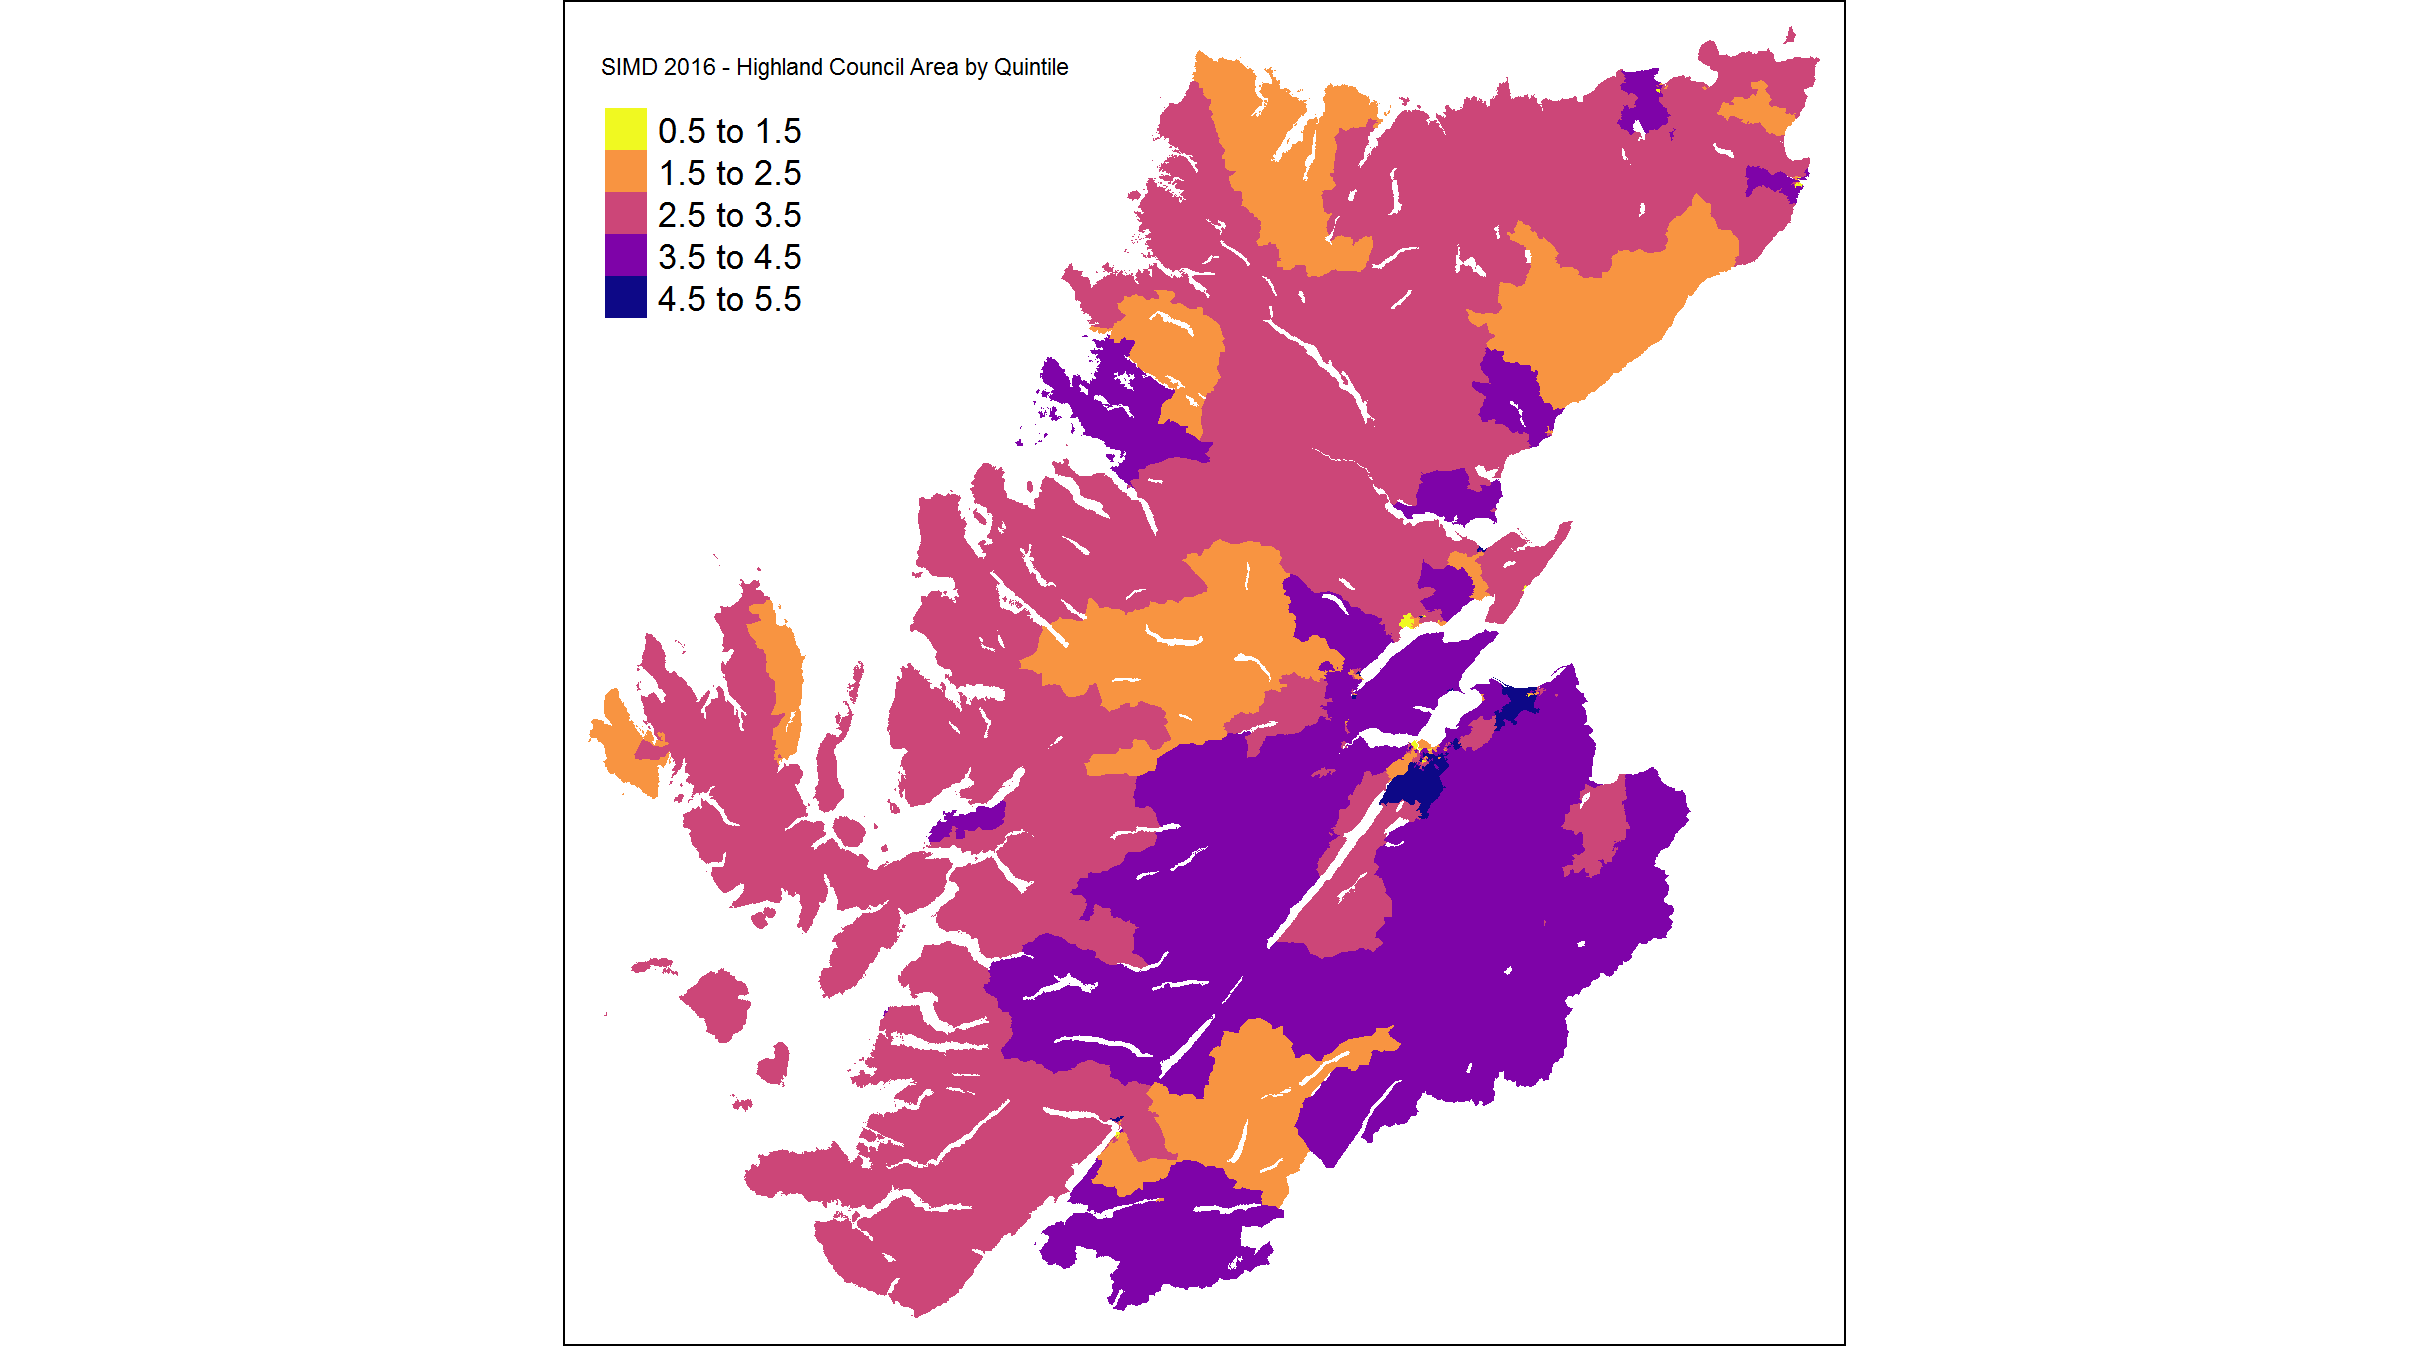 tmap-Highland-SIMD-Quintile.png